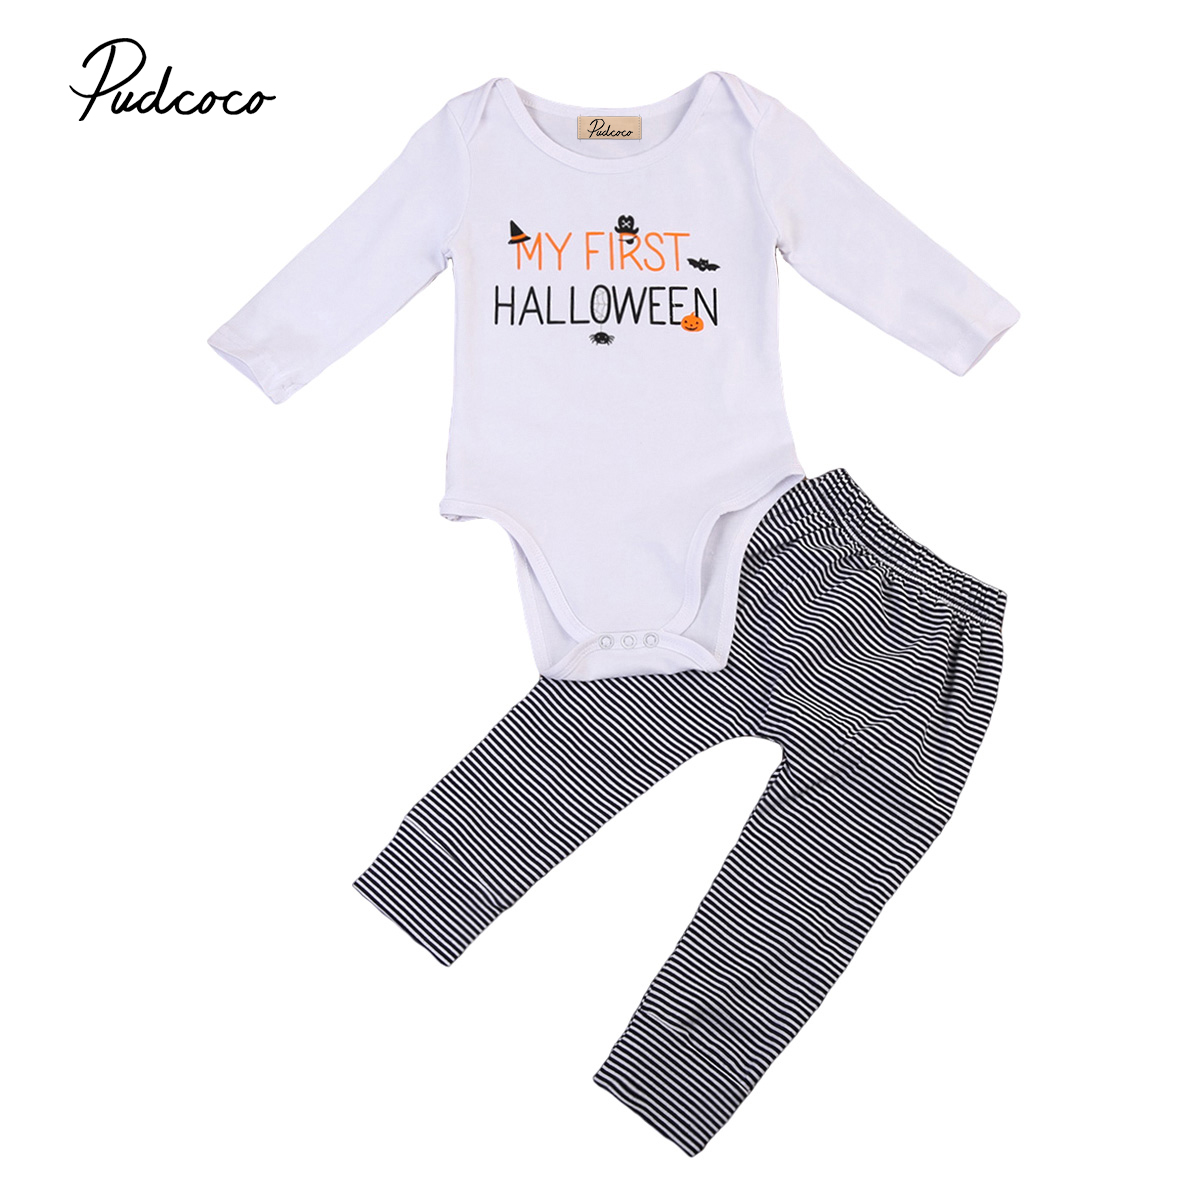 Pudcoco Cute Kids Baby Boy Girl Halloween Outfits Long Sleeve Tops Romper Pants 2pcs Clothes Casual Cotton Pumpkin Baby Sets